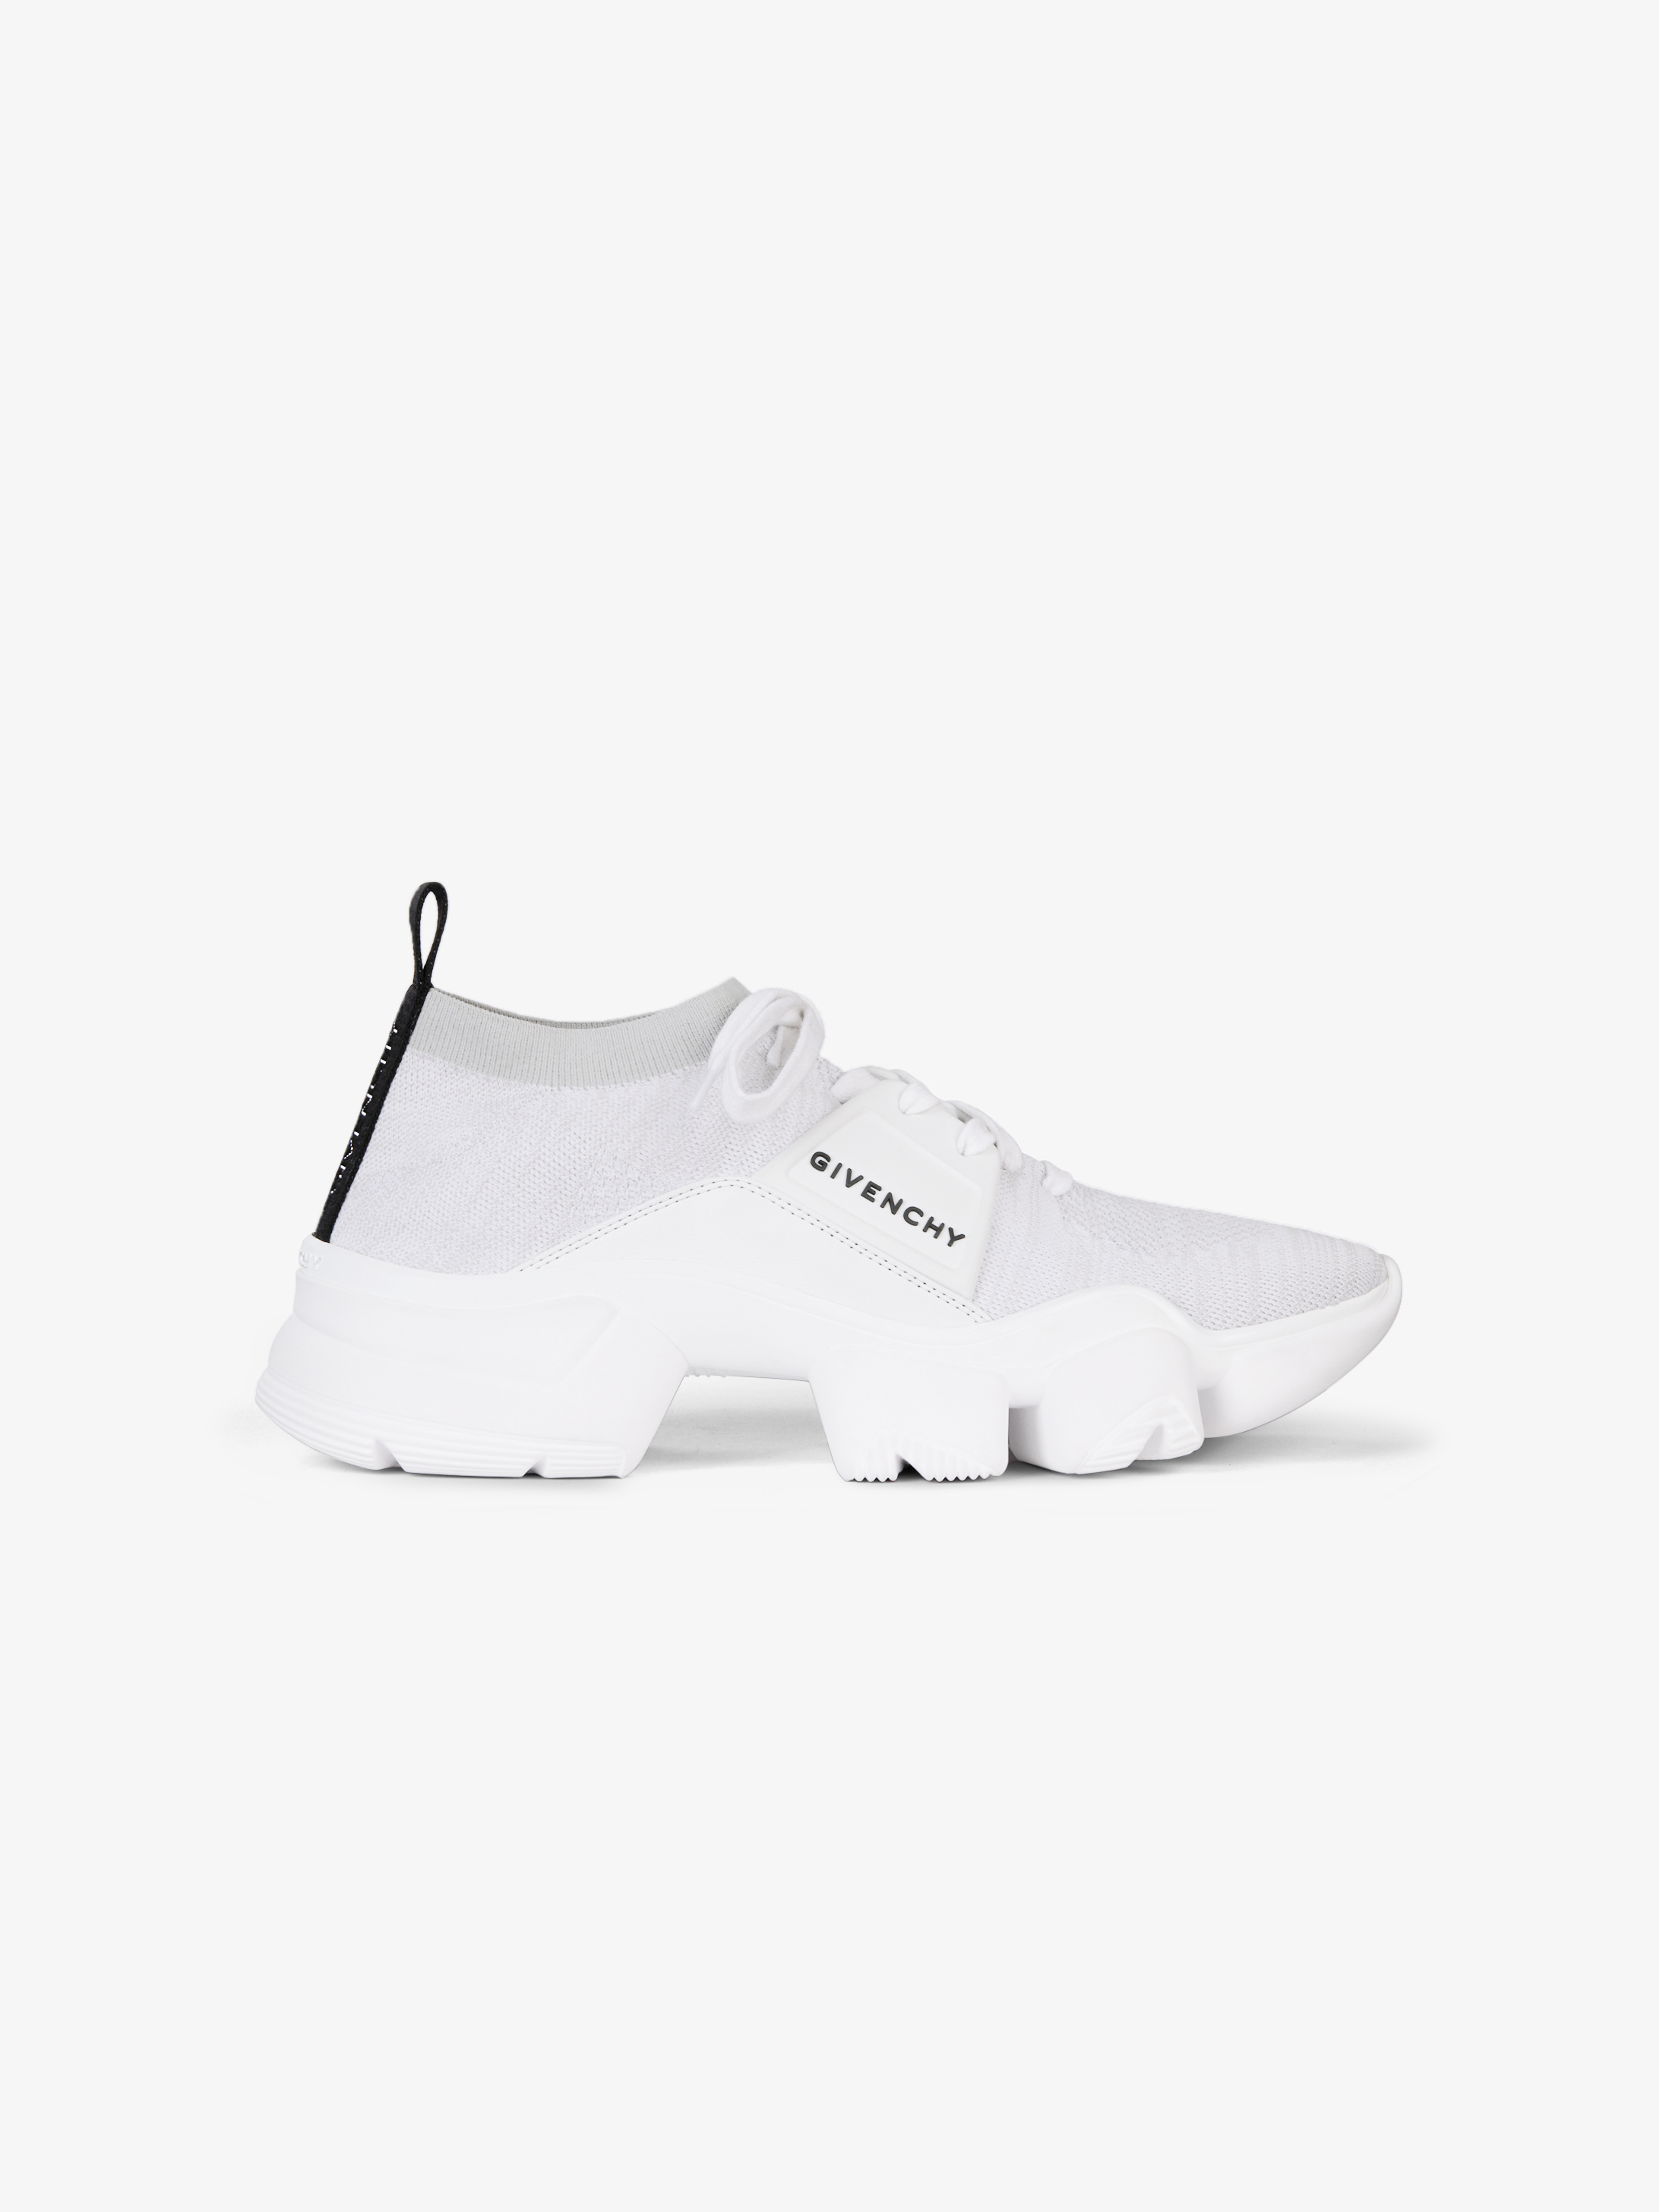 Sneakers basses Jaw en maille